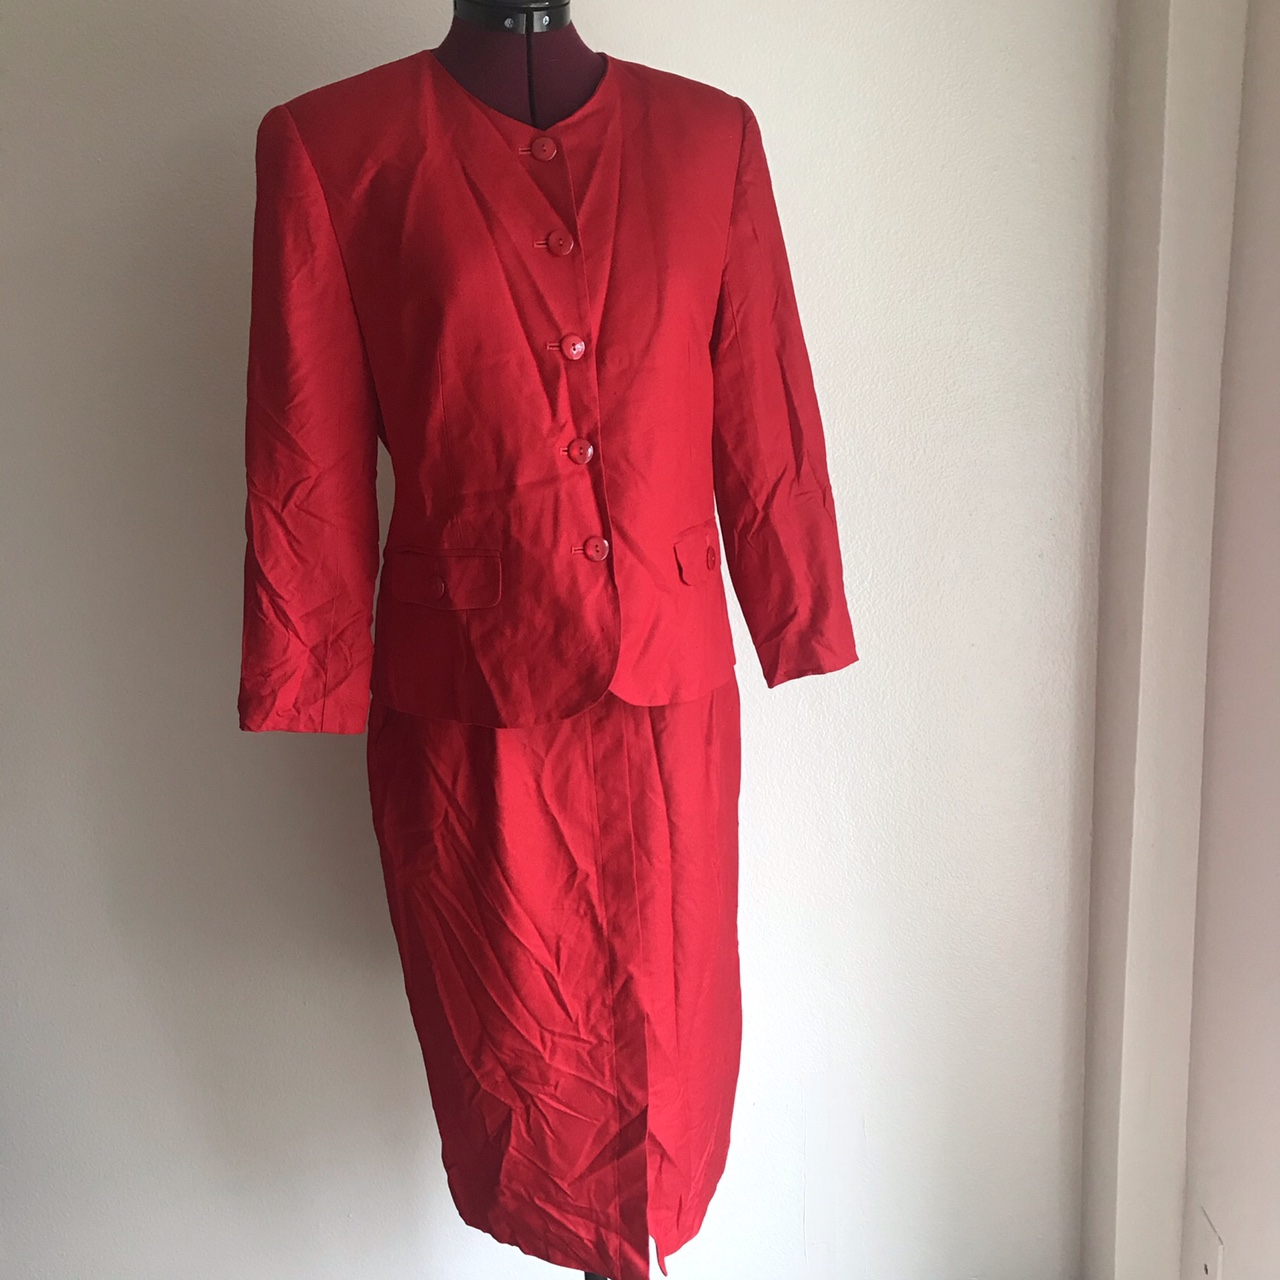 Product Image 1 - Y2k Talbots Petites red power